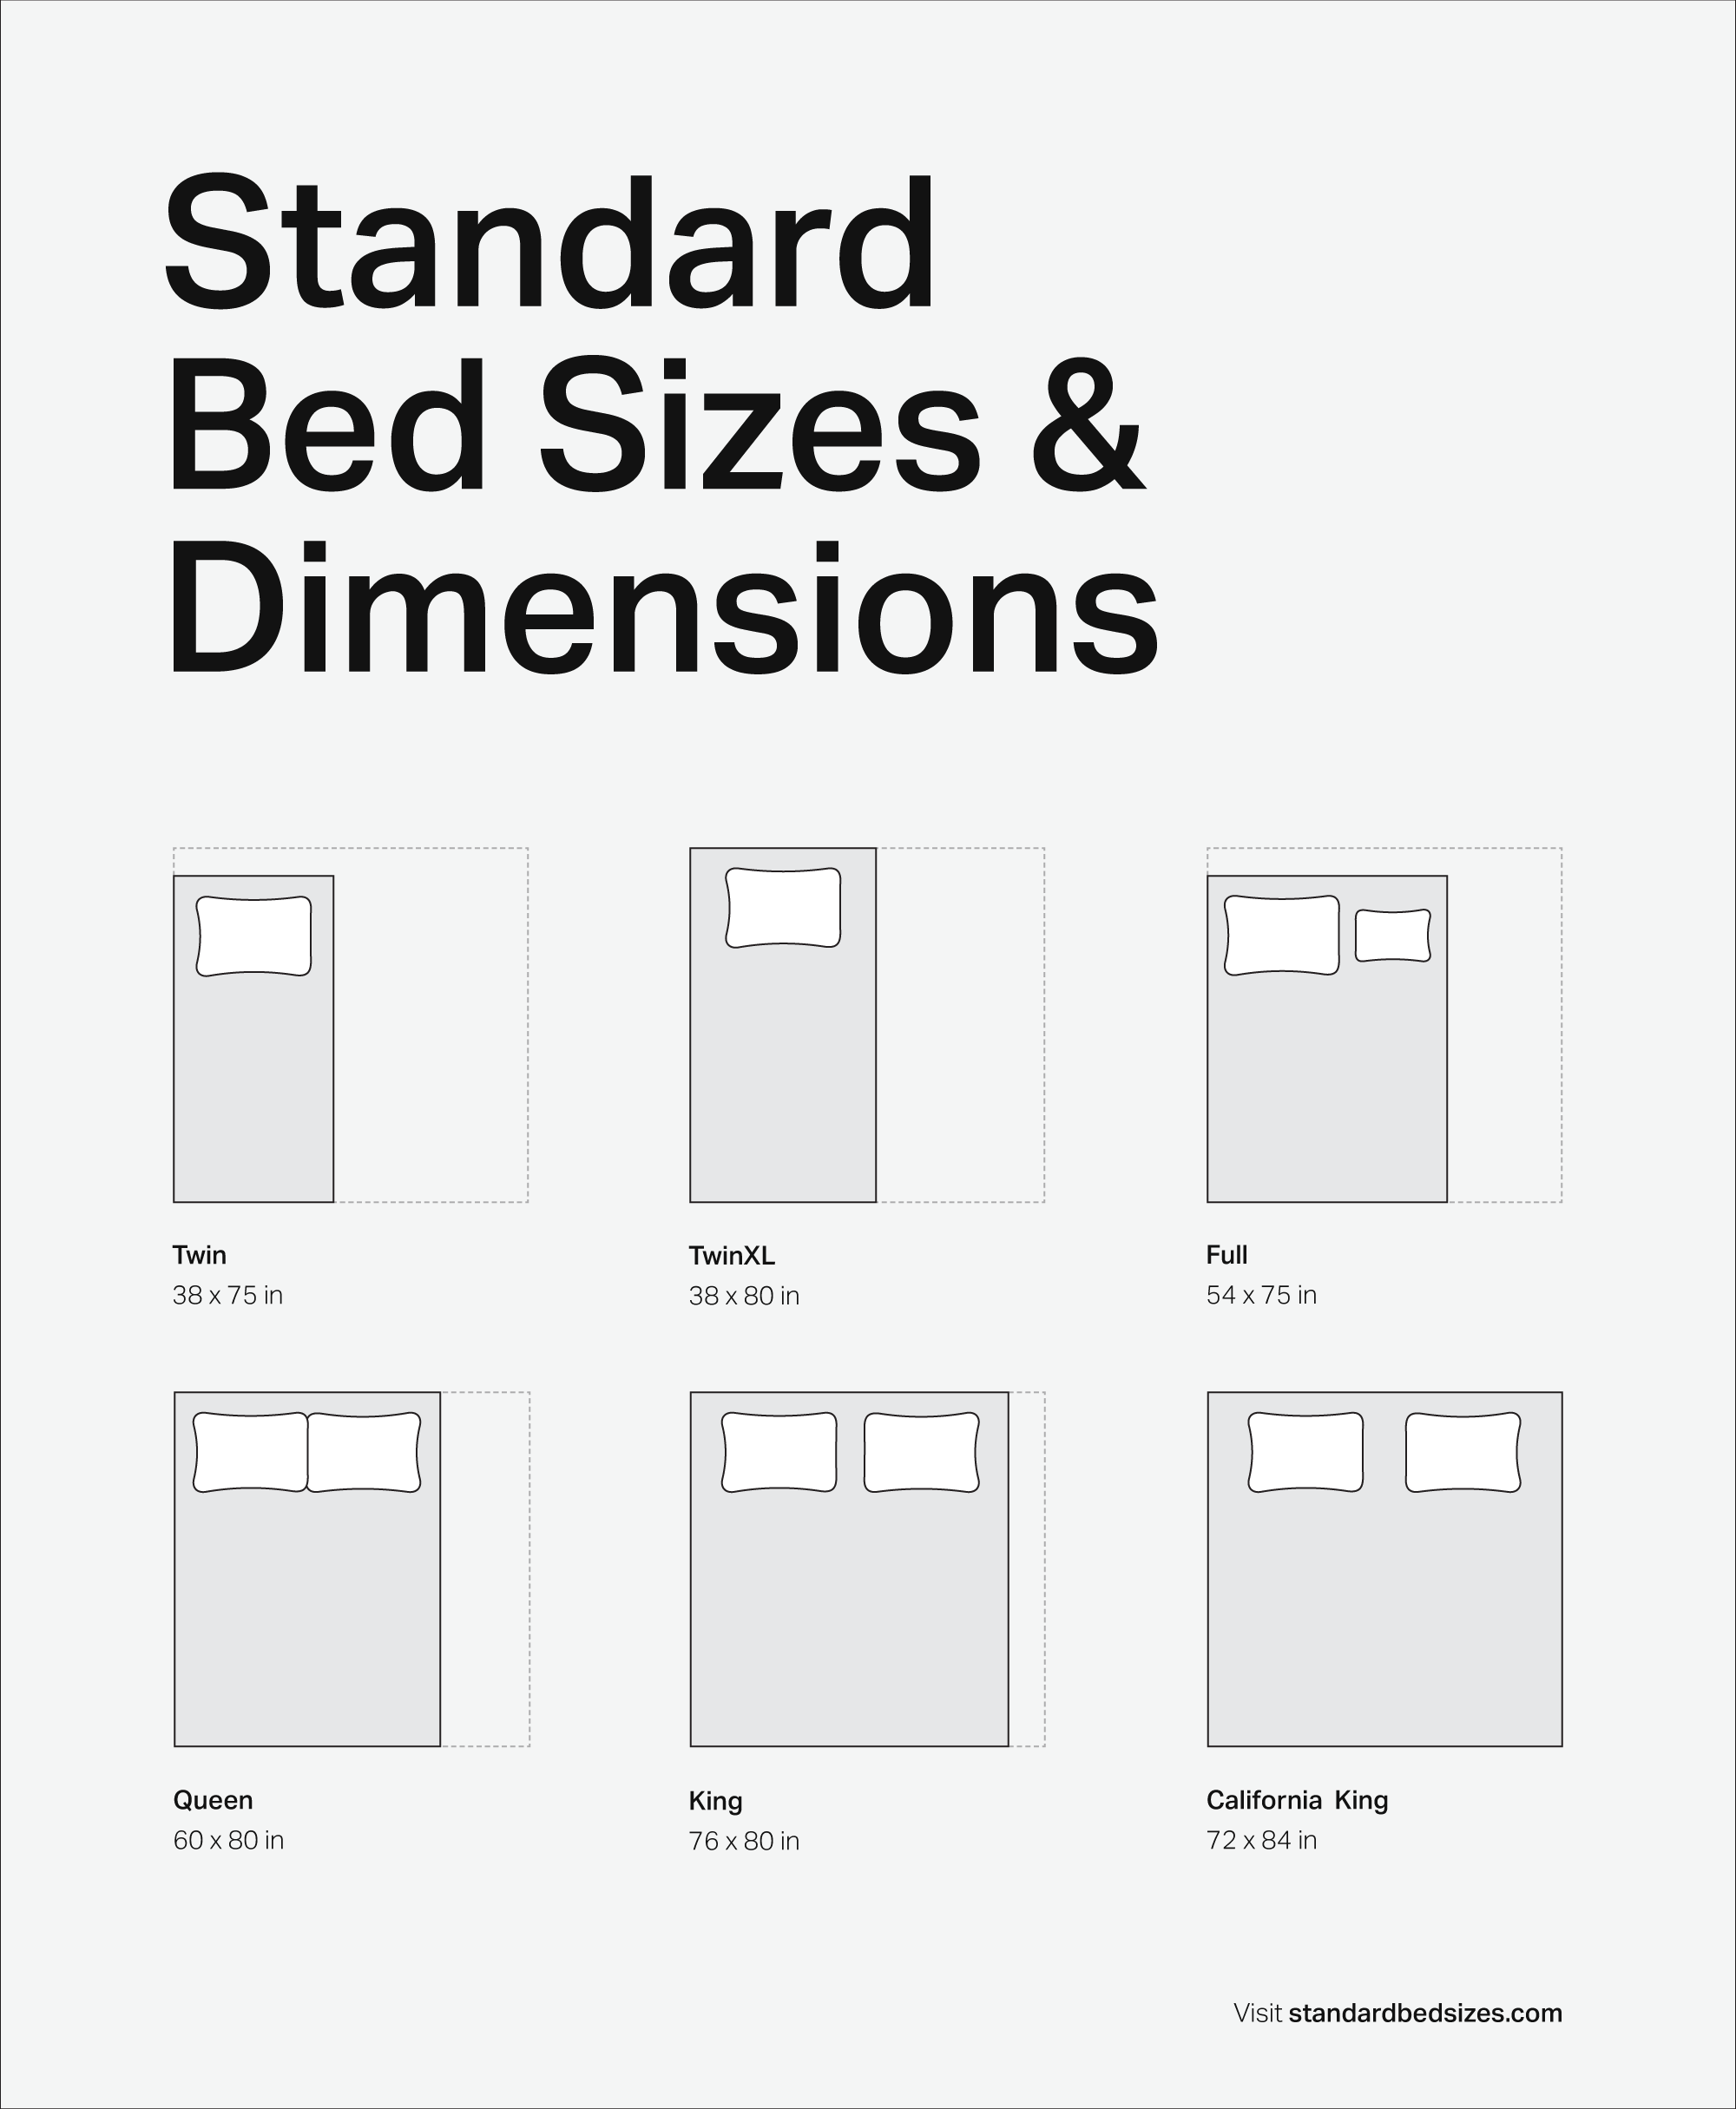 Full Bed Dimensions.Bed Sizes Dimensions Guide Standardbedsizes Com